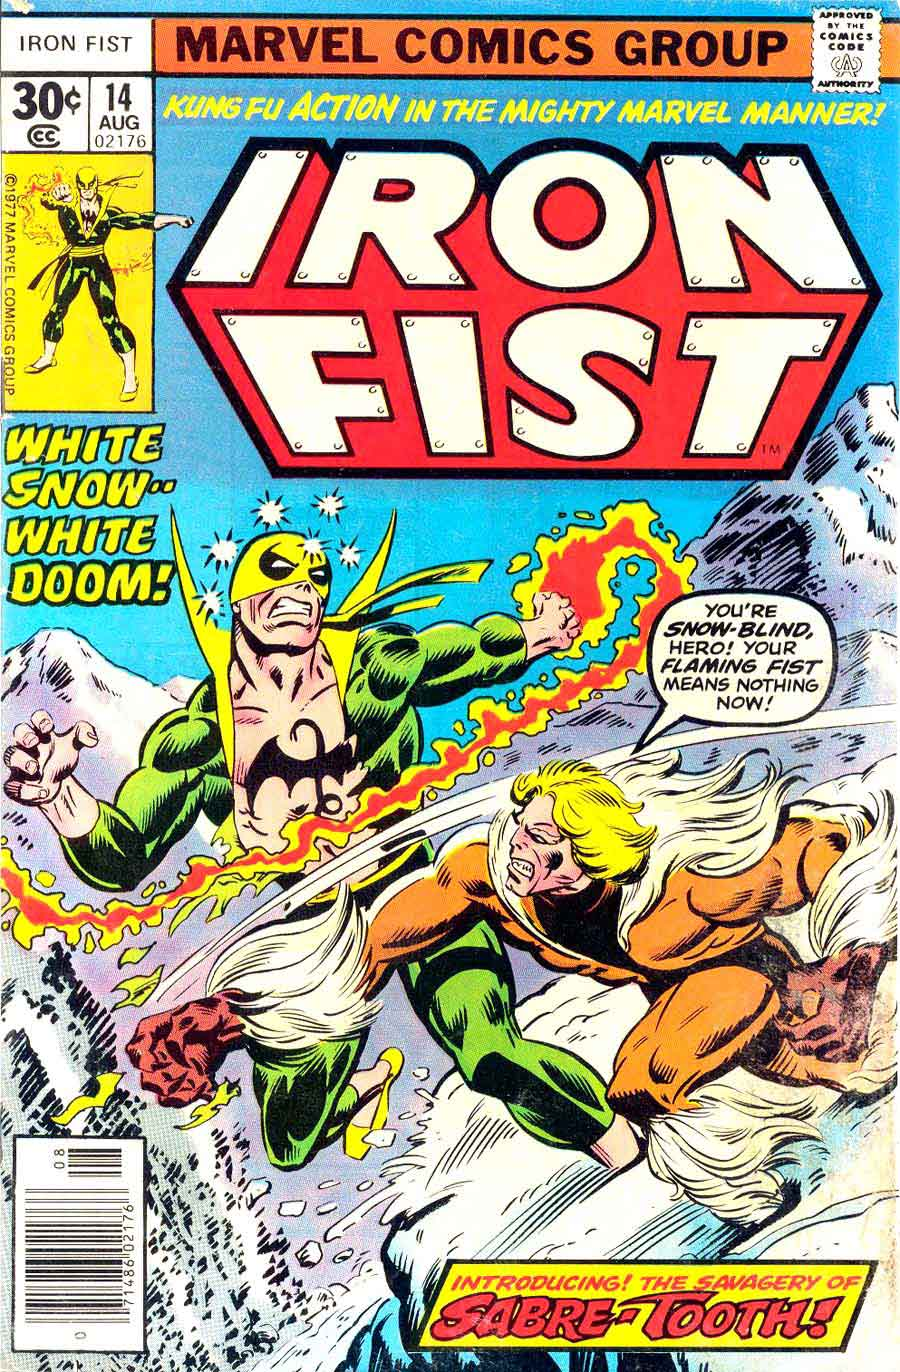 Iron Fist #14 / 1st appearance Sabre-Tooth / bronze age marvel comic book cover